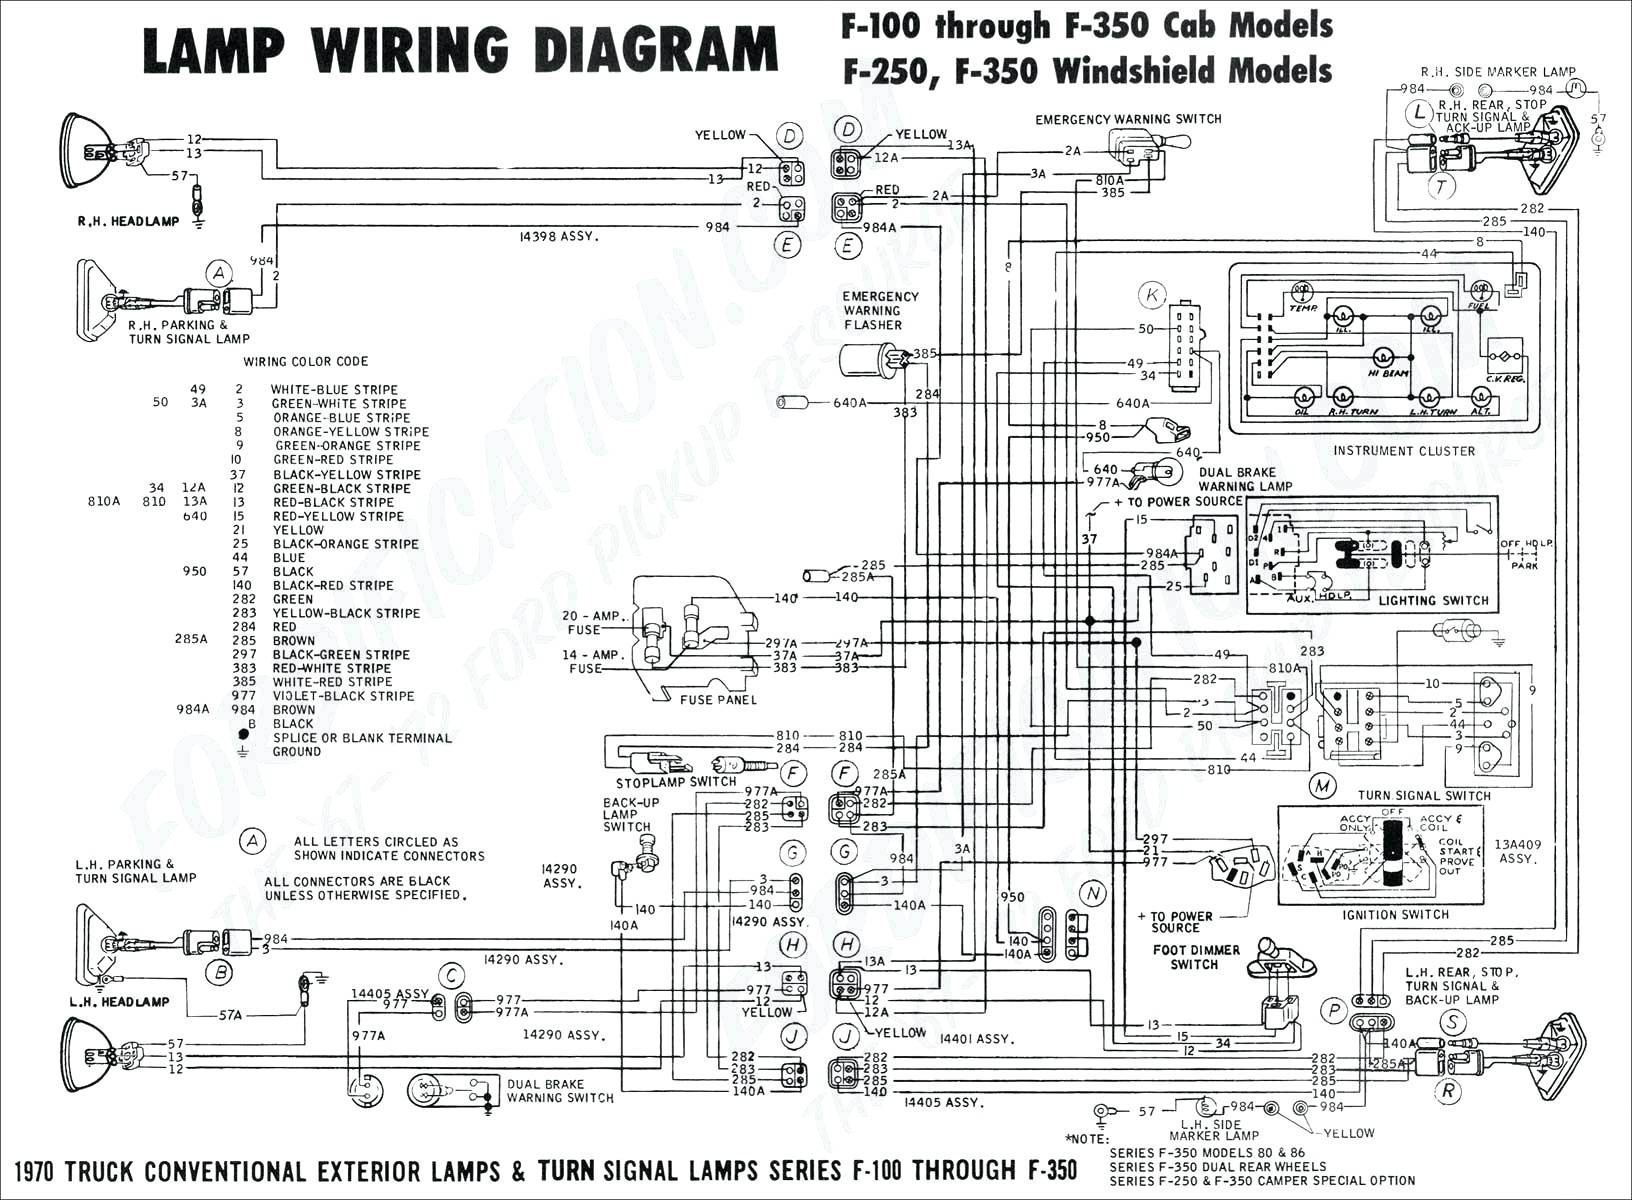 Meyer Snow Plow Wiring Diagram Snow Plow Wiring Diagram Fresh Wiring Diagram for Meyers Snow Plow Of Meyer Snow Plow Wiring Diagram Snow Plow Wiring Diagram Best Meyers Snow Plows Wiring Diagram